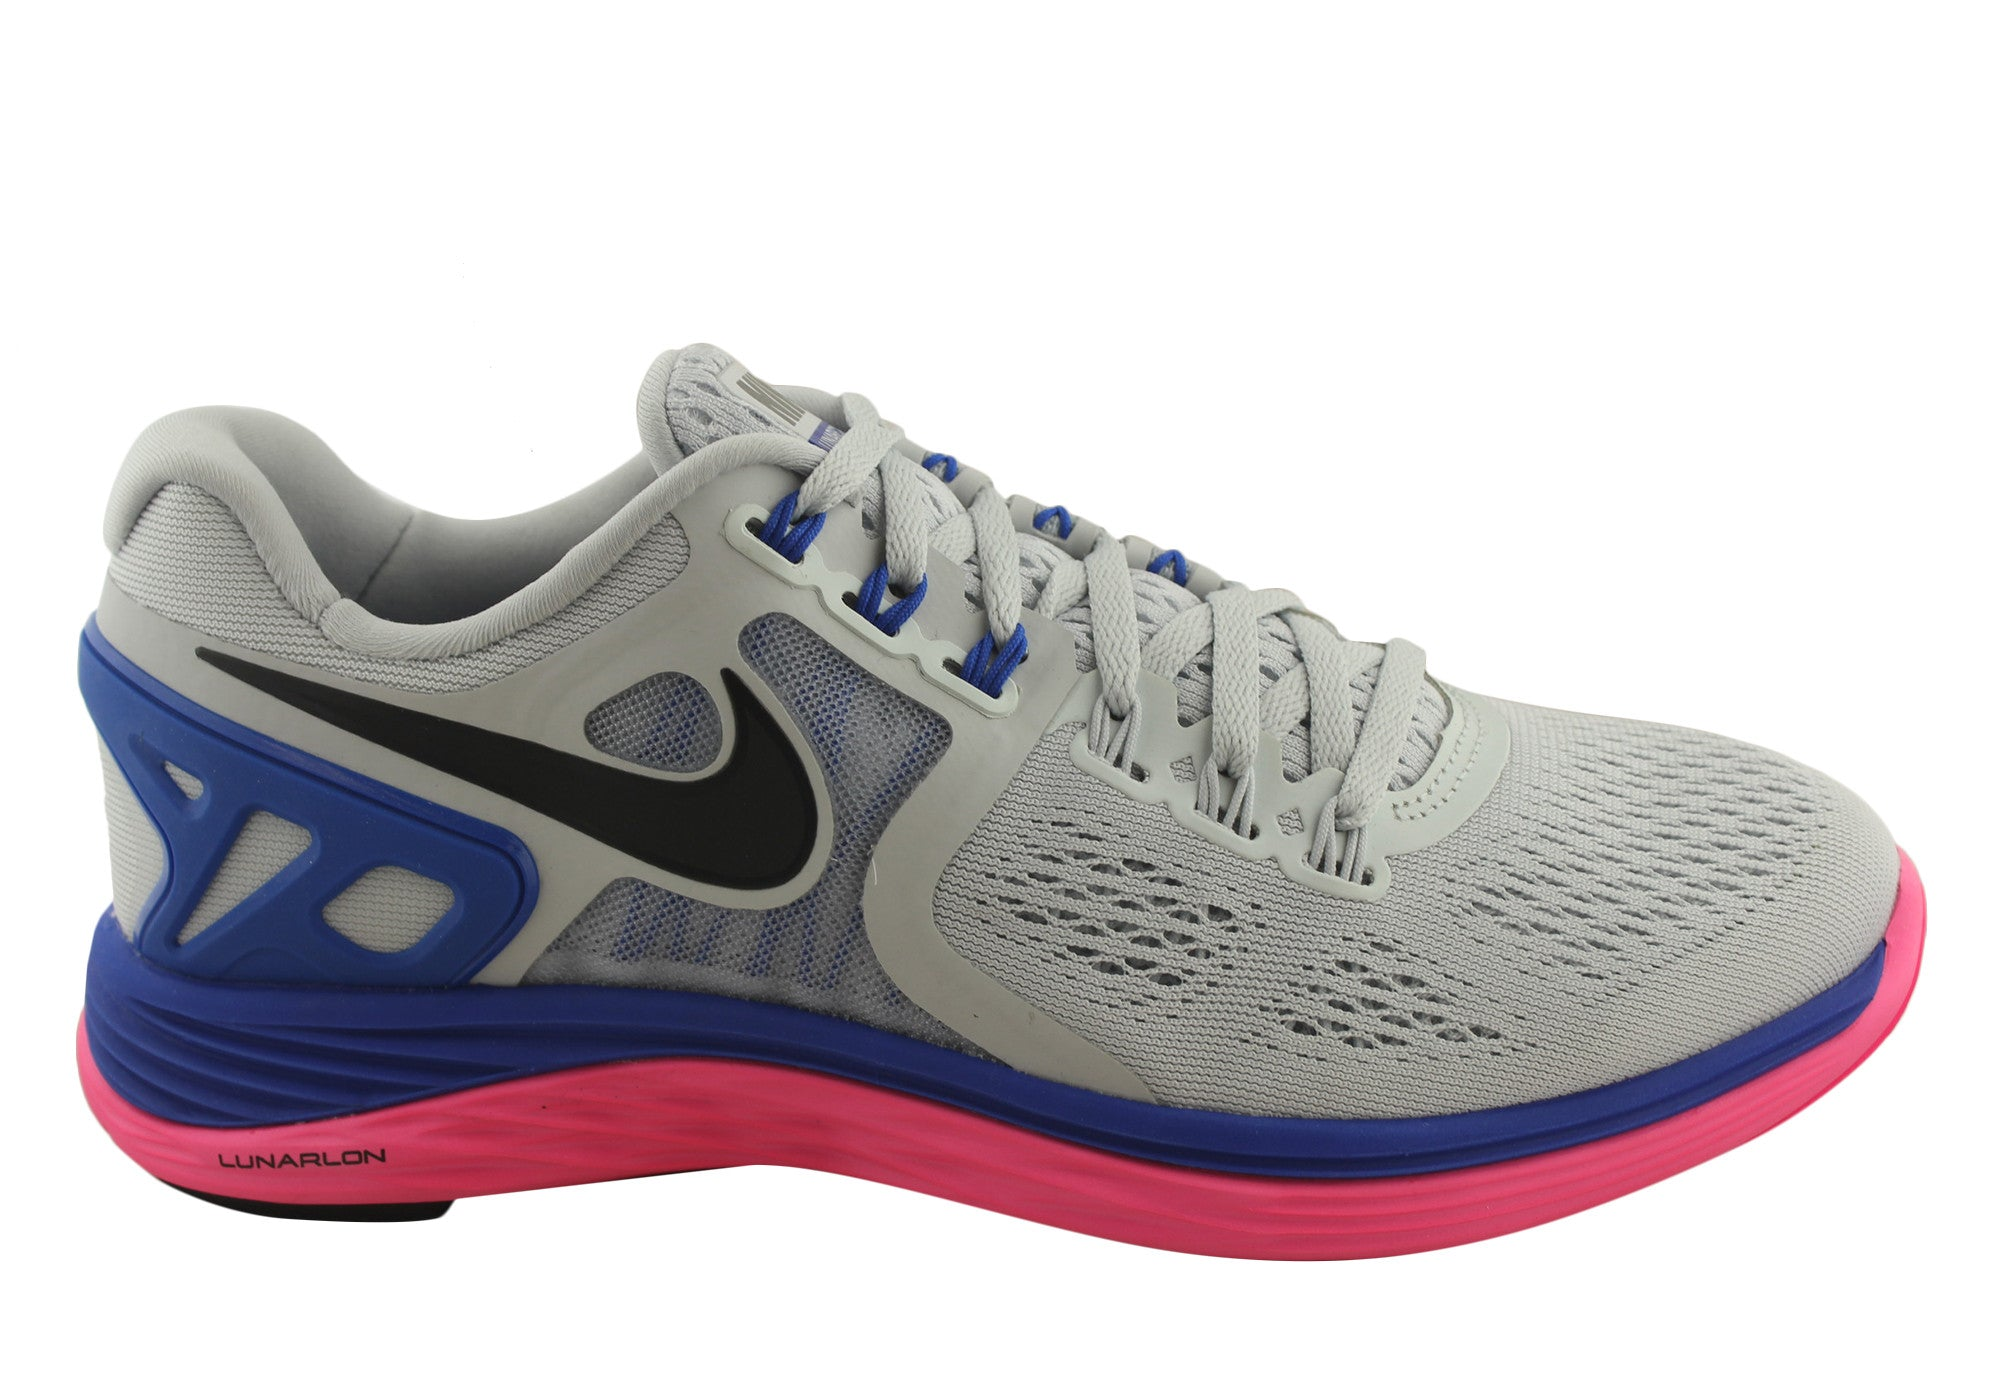 27dd8b2e4bdf Nike Lunareclipse 4 Womens Comfortable Running Shoes